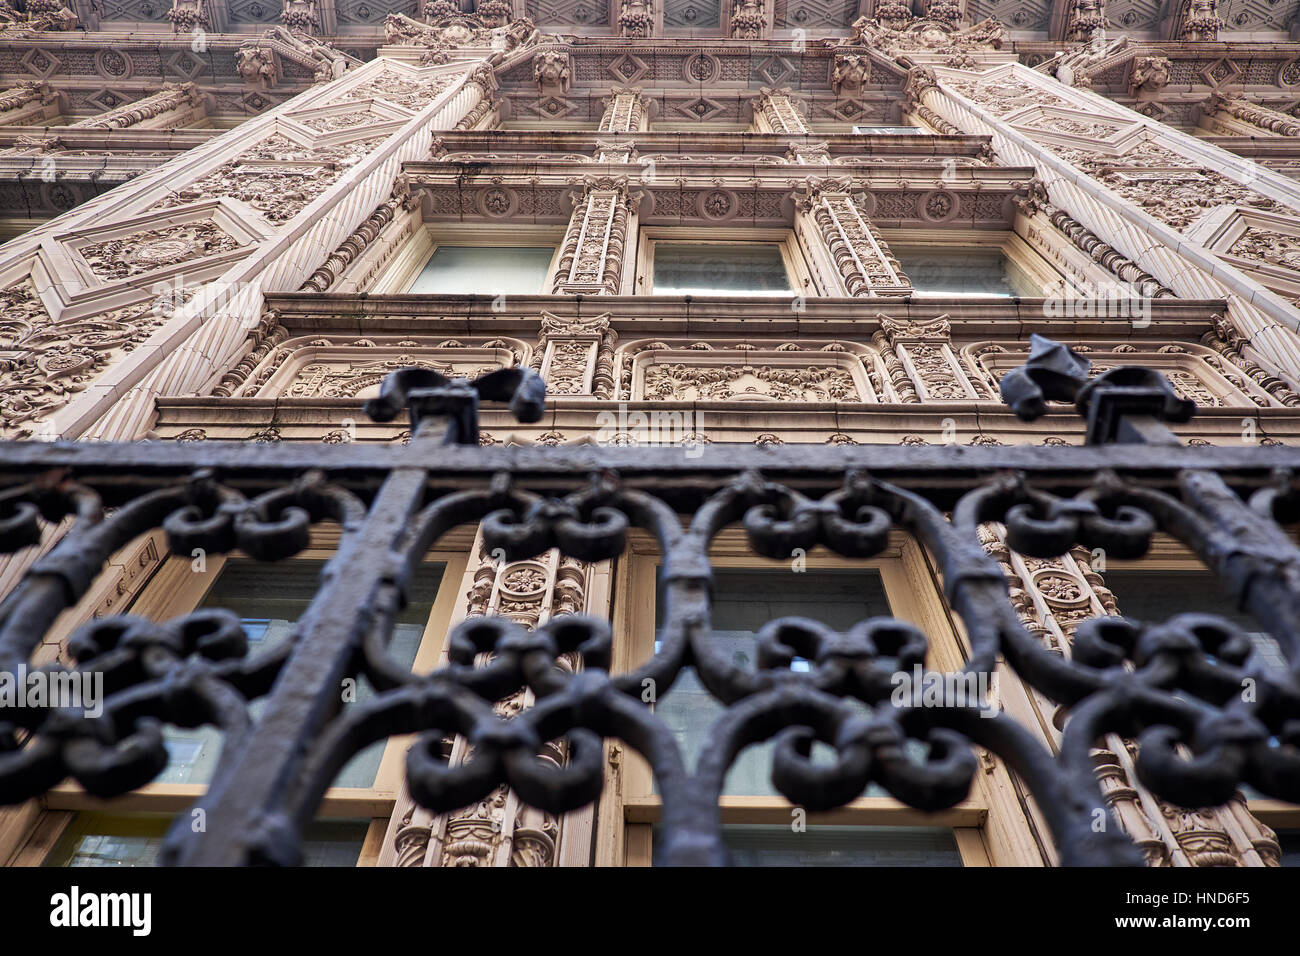 Close up of a terra cotta facade in french renaissance style with elaborate decorations around the windows on a - Stock Image